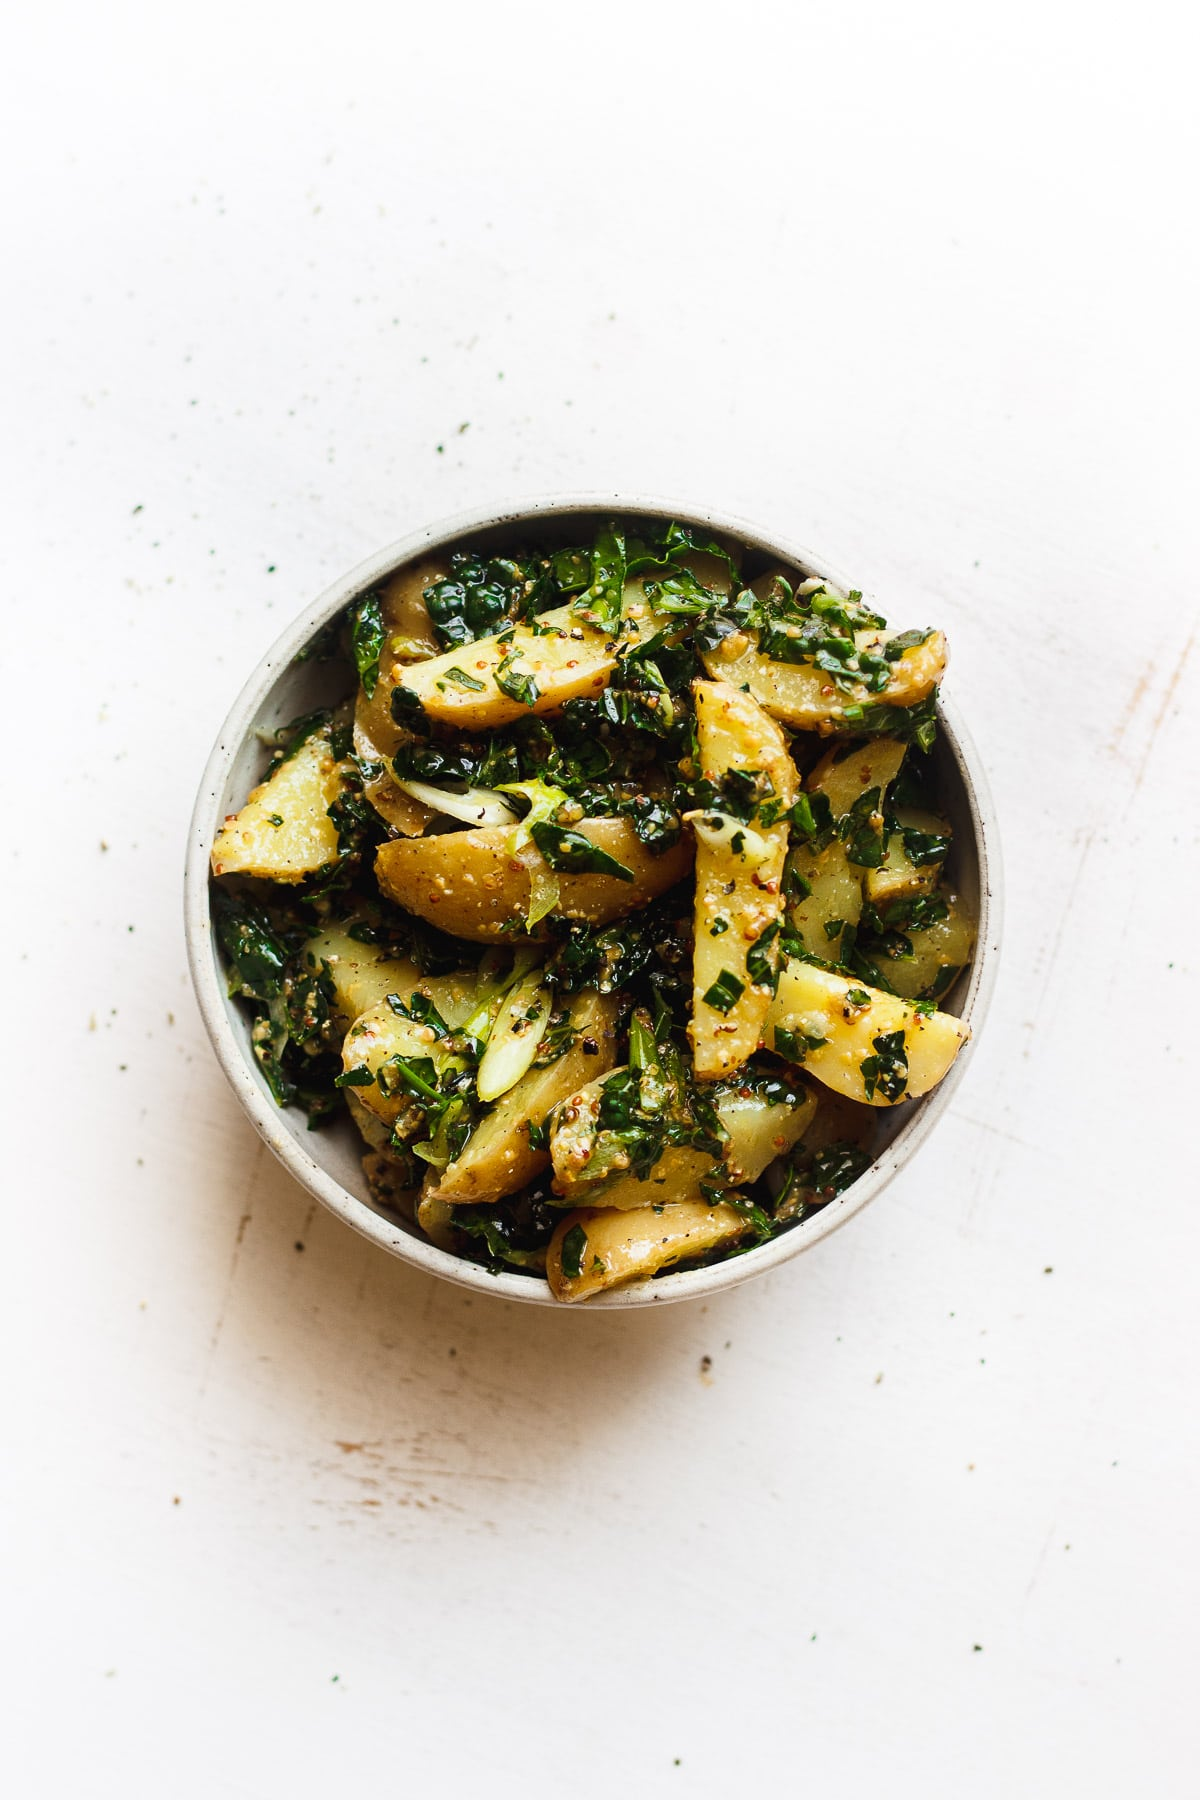 kale potato salad with grainy mustard dressing in a bowl